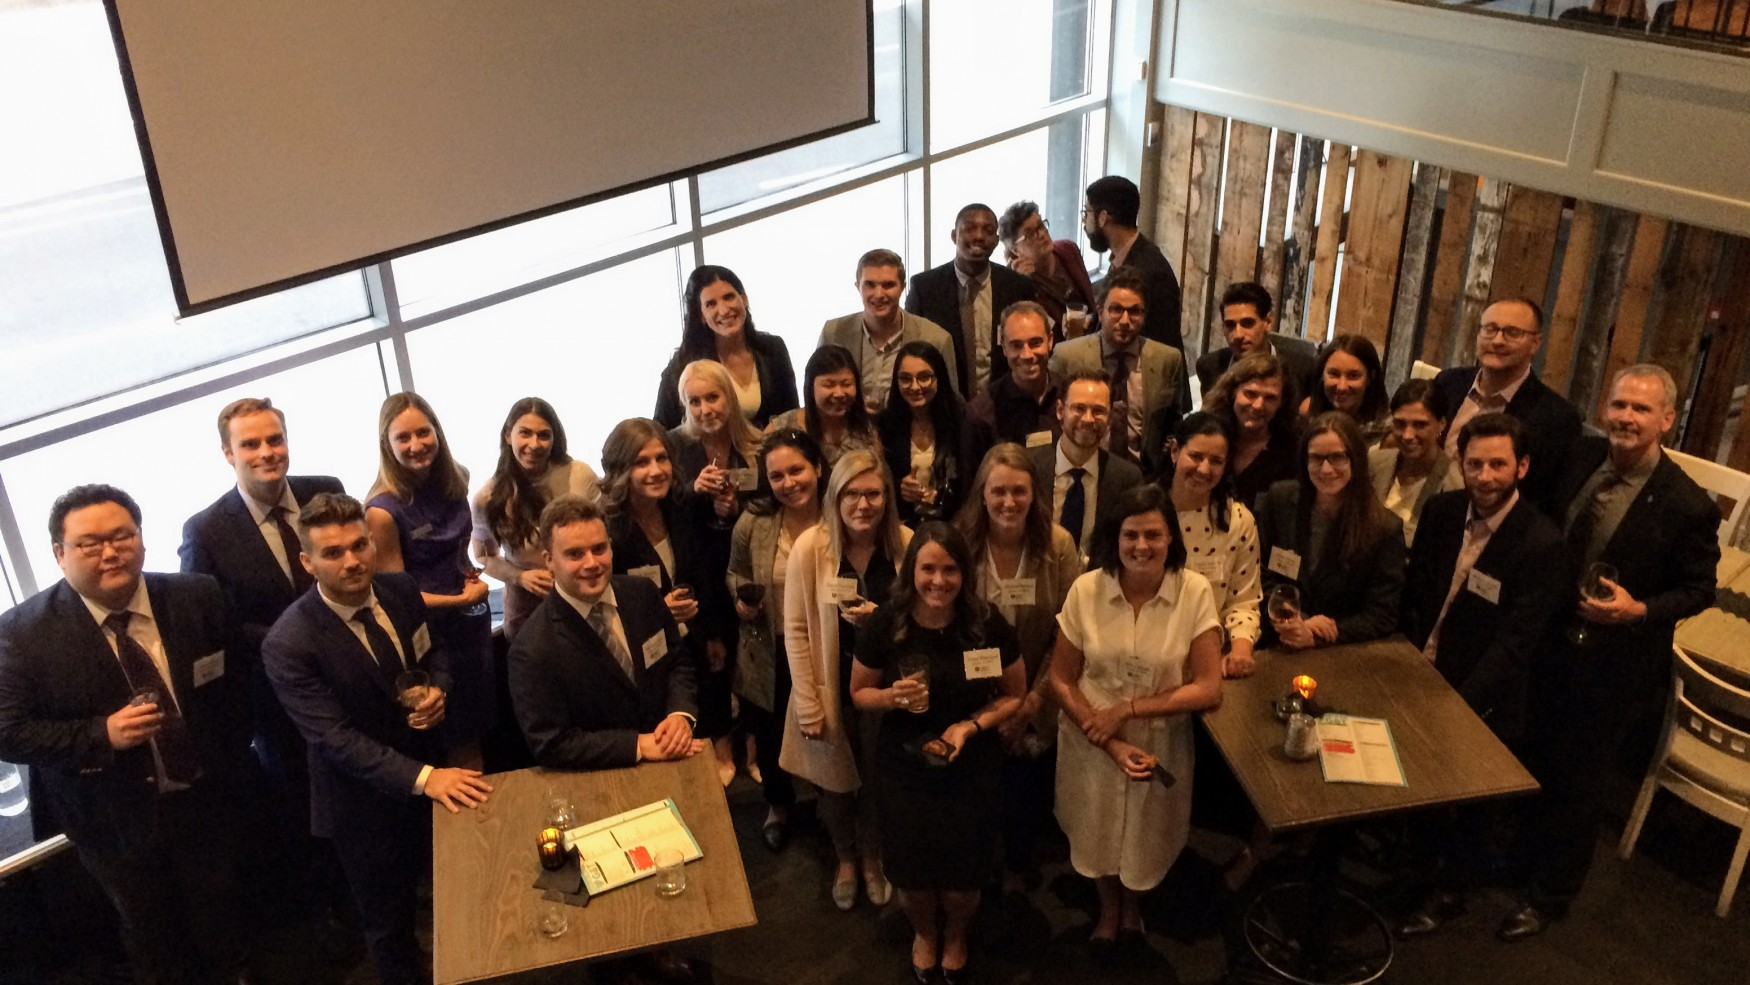 TRU Law Calgary Alumni Reception held on September 16